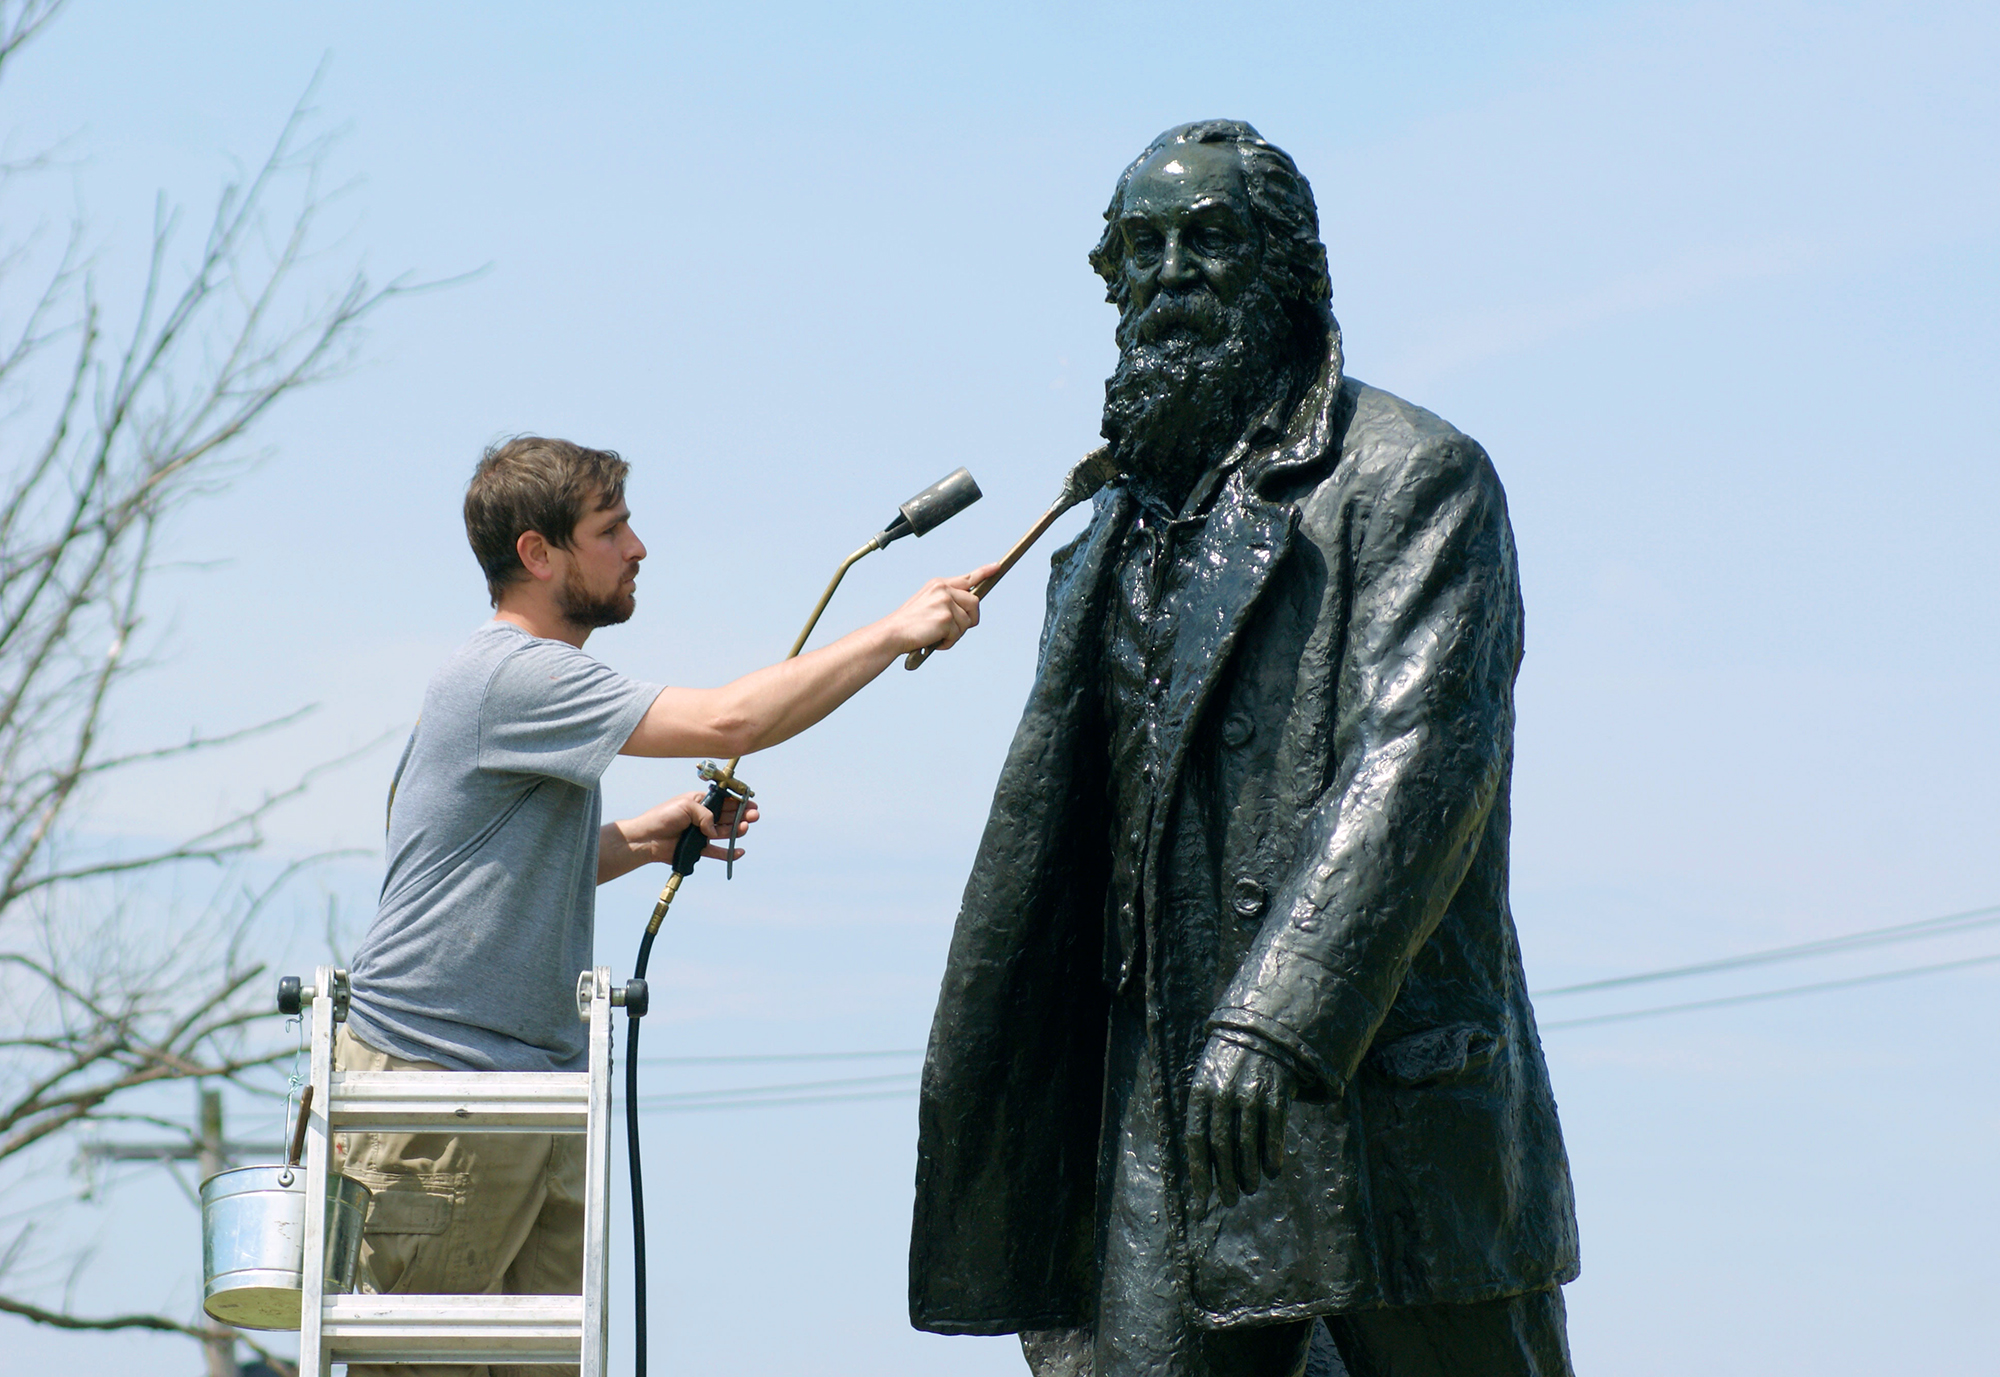 Conservators treating a bronze statue of Walt Whitman in south philadelphia